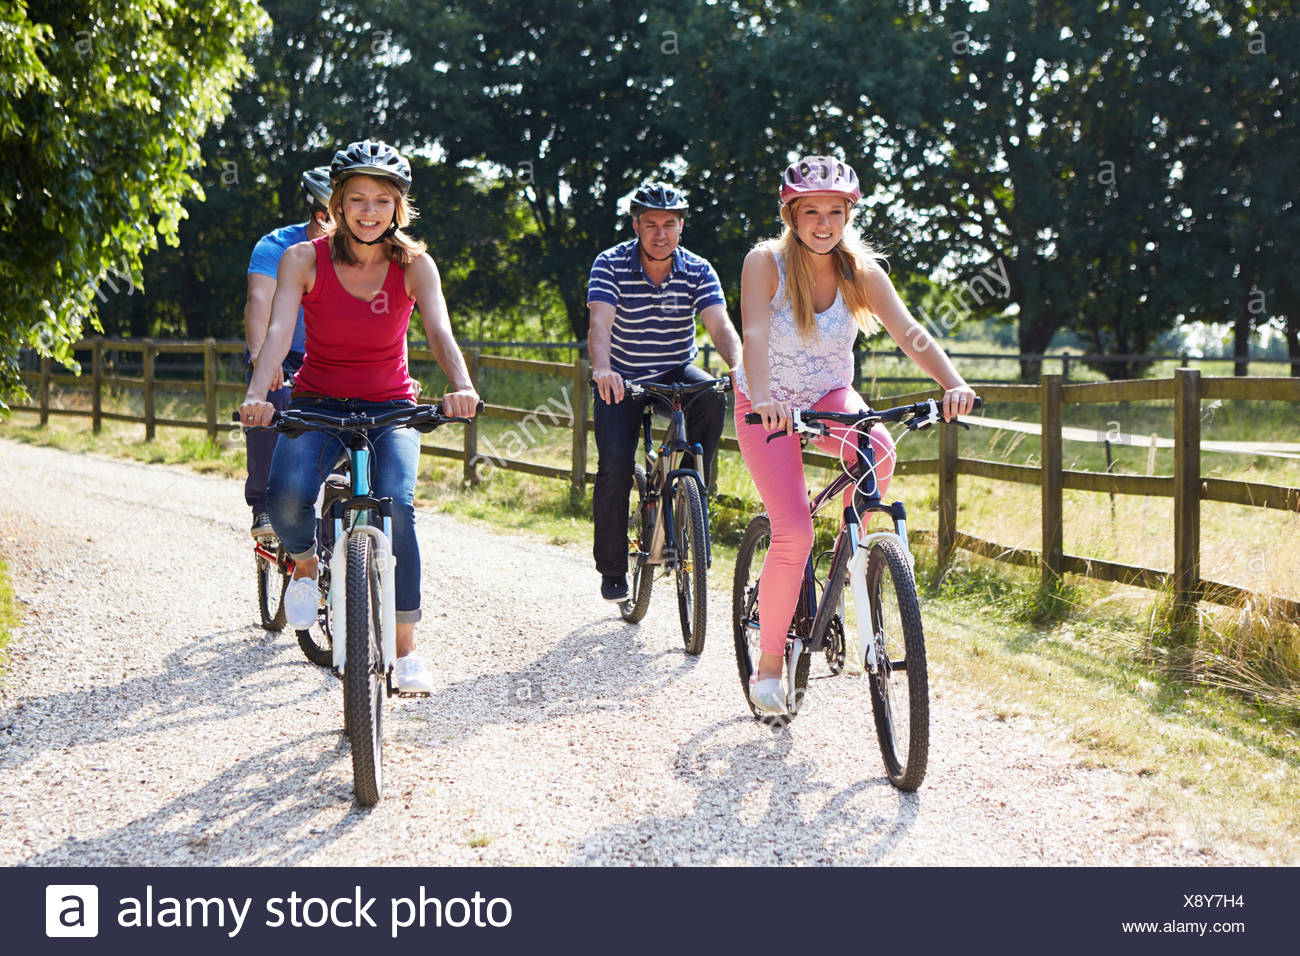 Family With Teenage Children On Cycle Ride In Countryside - Stock Image